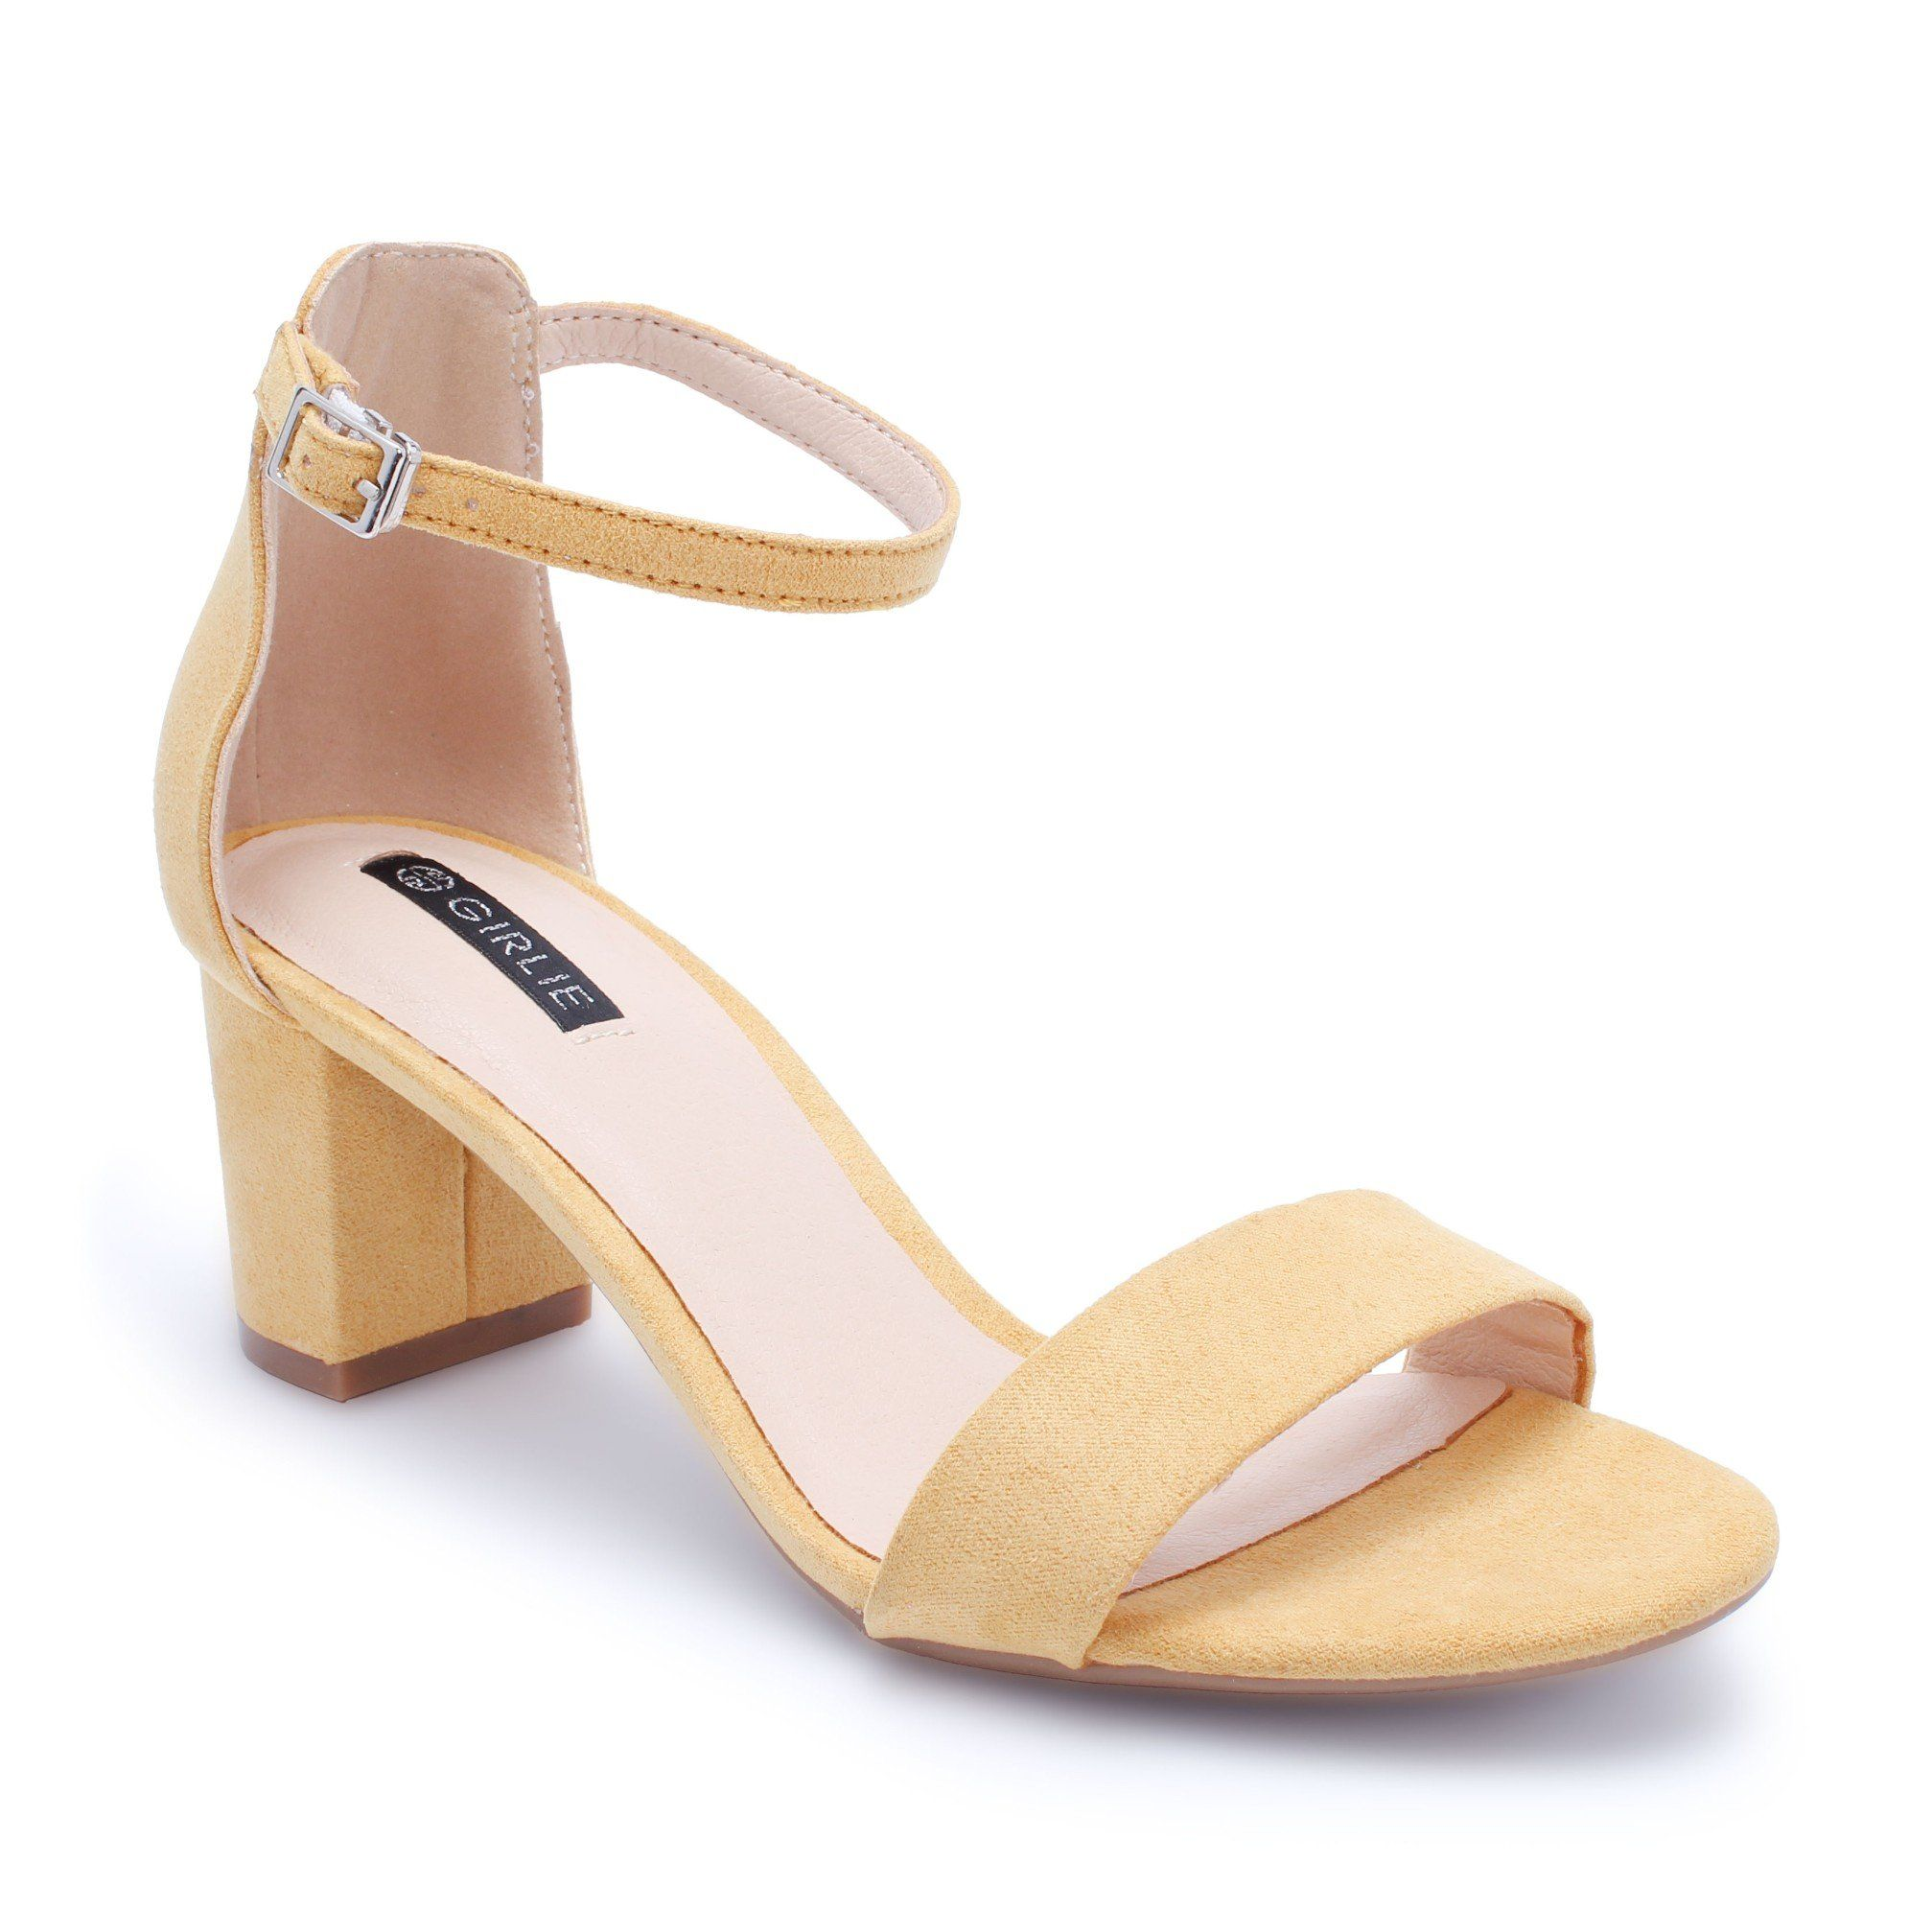 b3410715fde Low Block Heeled Sandals Black  White  Yellow by GIRLIE